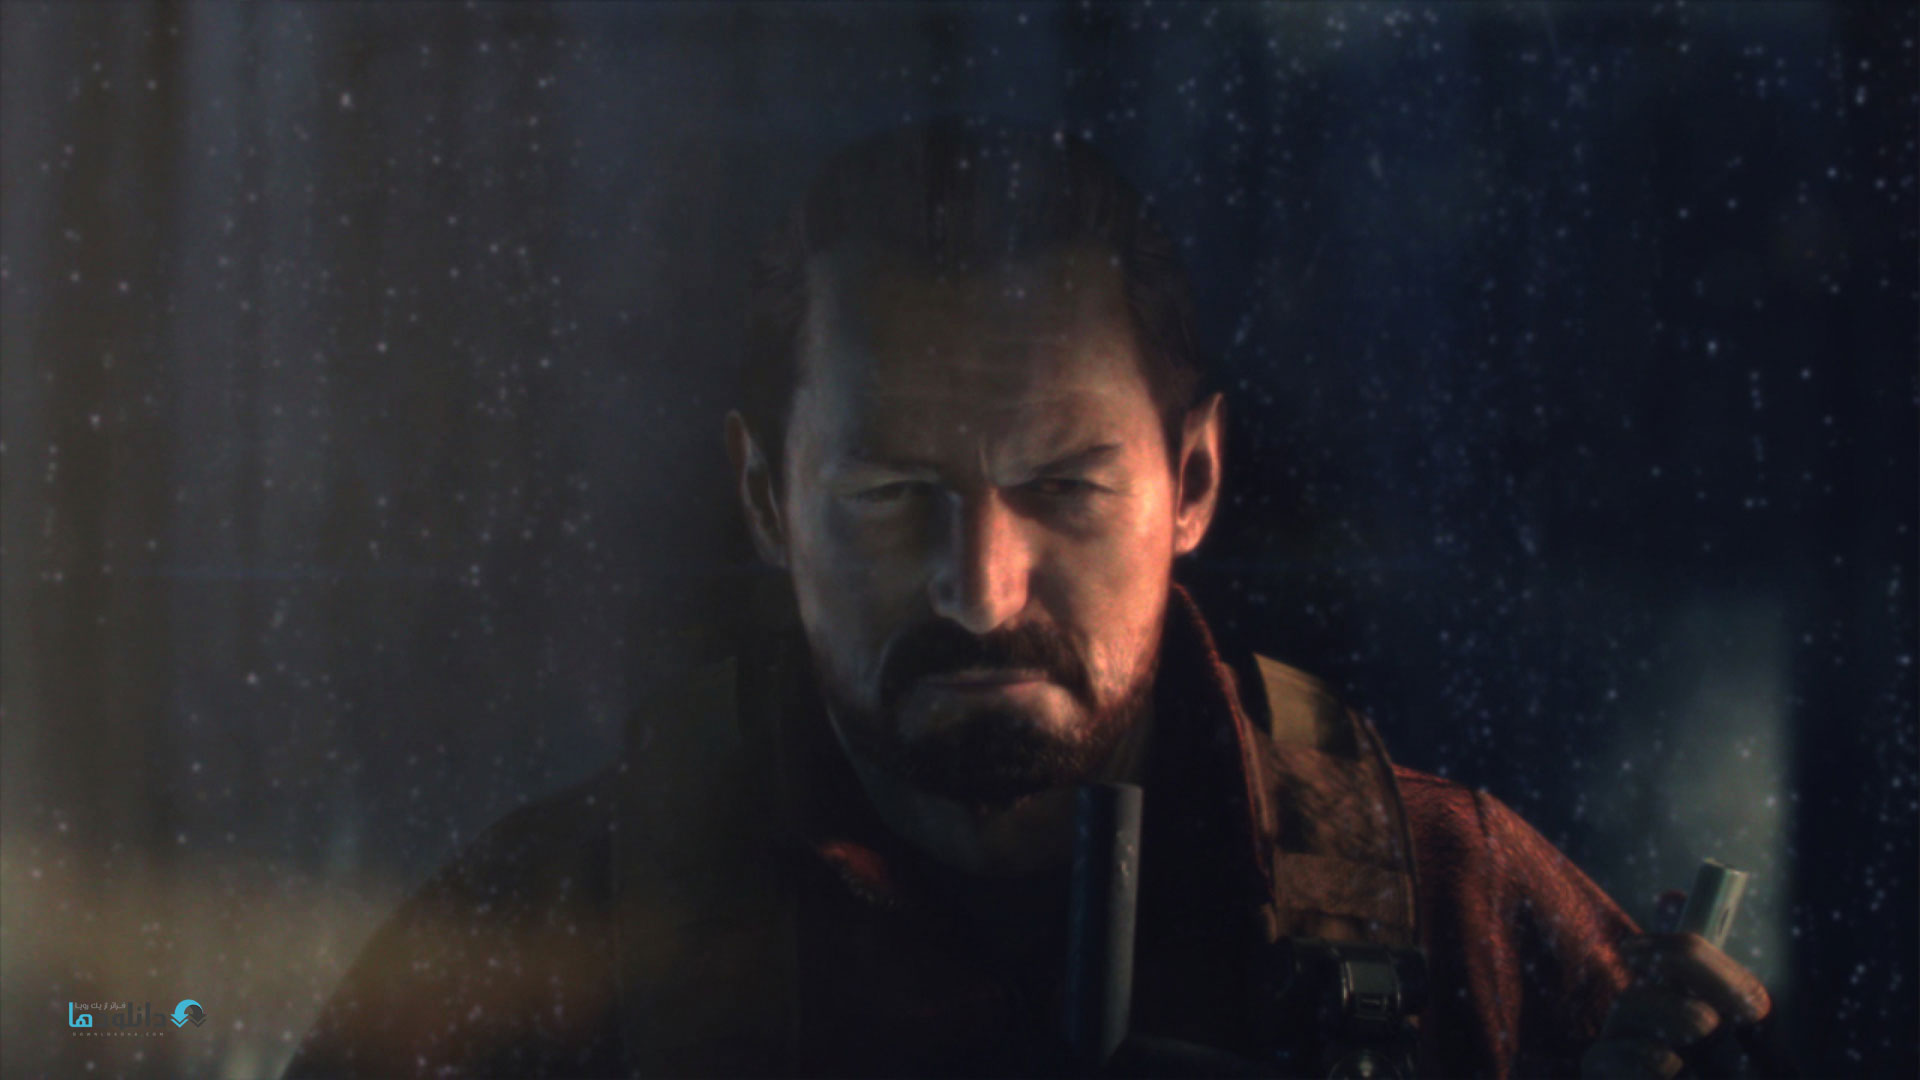 http://img5.downloadha.com/hosein/Game/February%202015/25/Resident-Evil-Revelations-2-Episode-1-screenshots-04-large.jpg